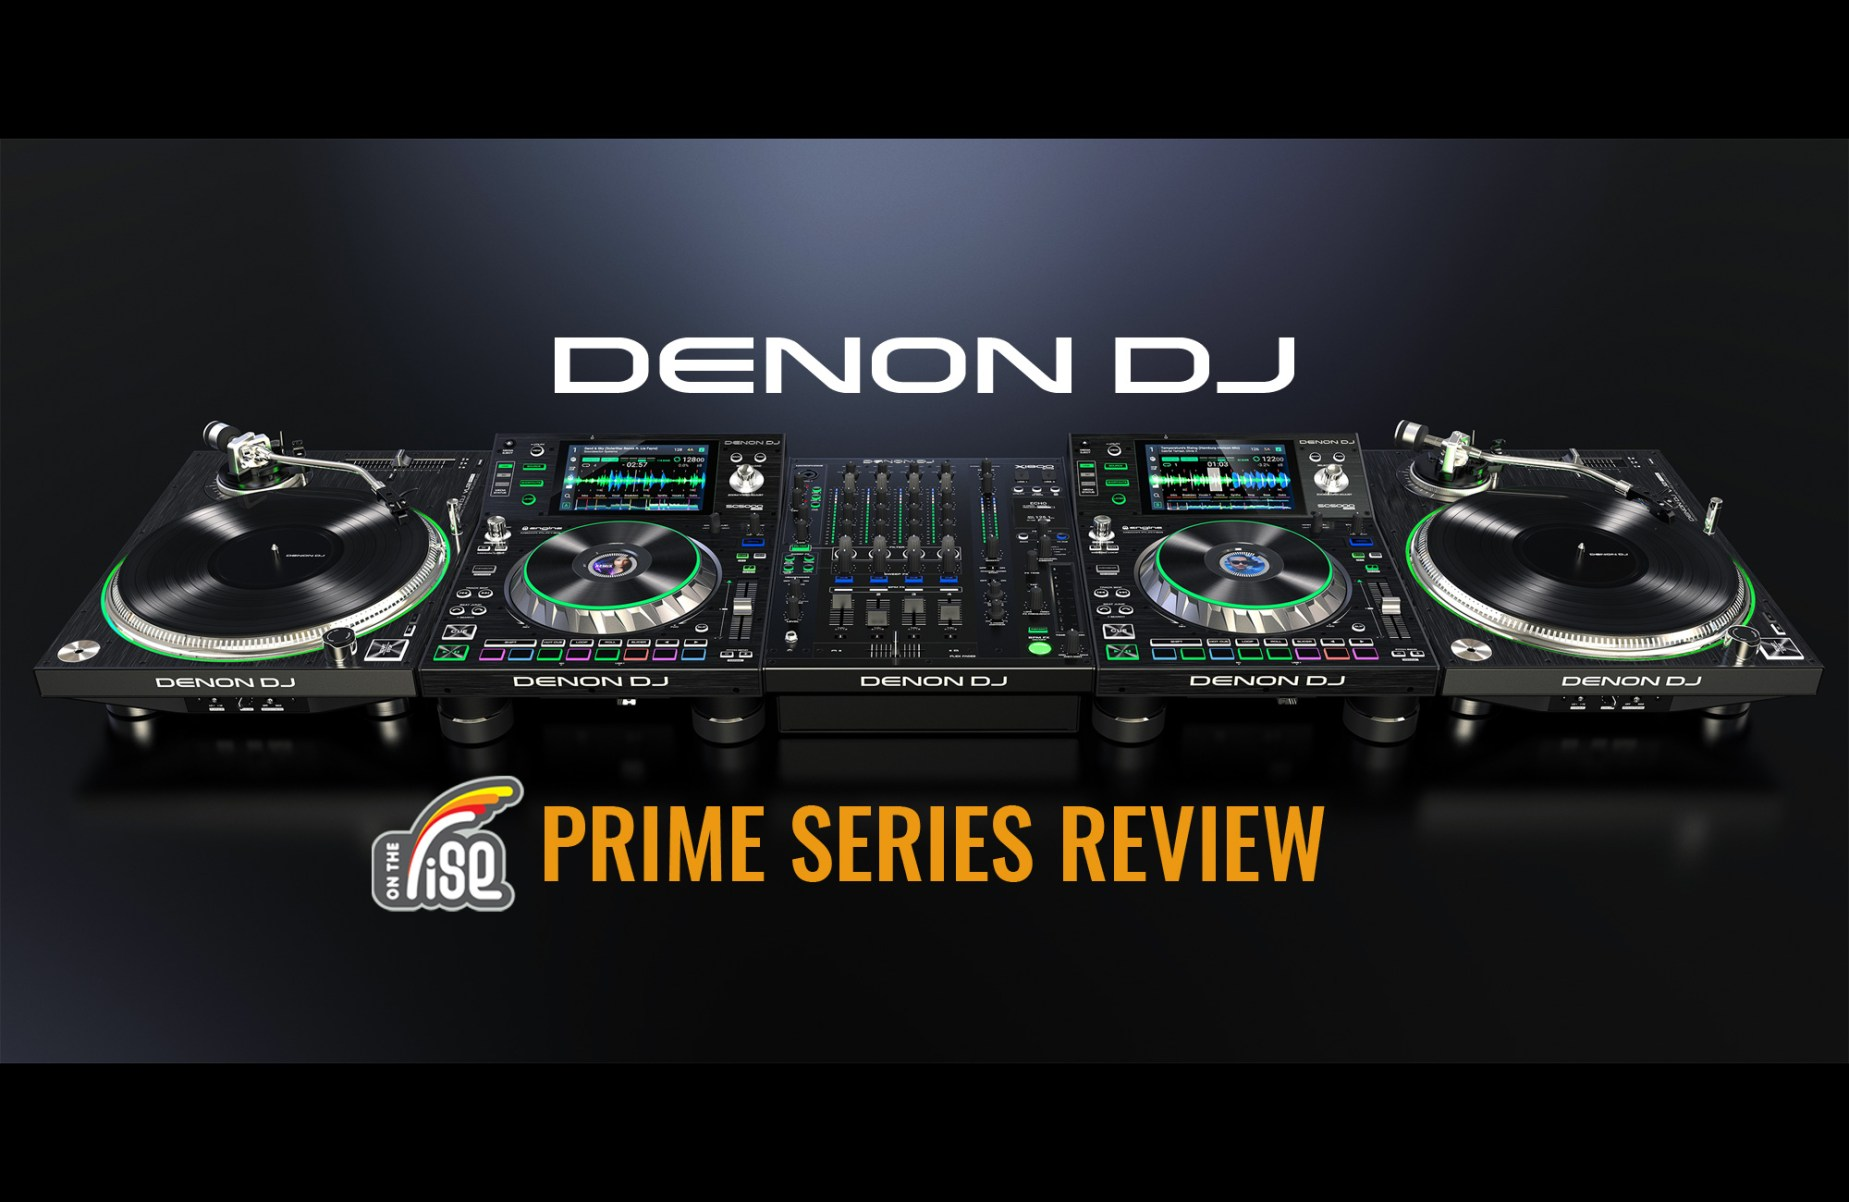 denon engine software review